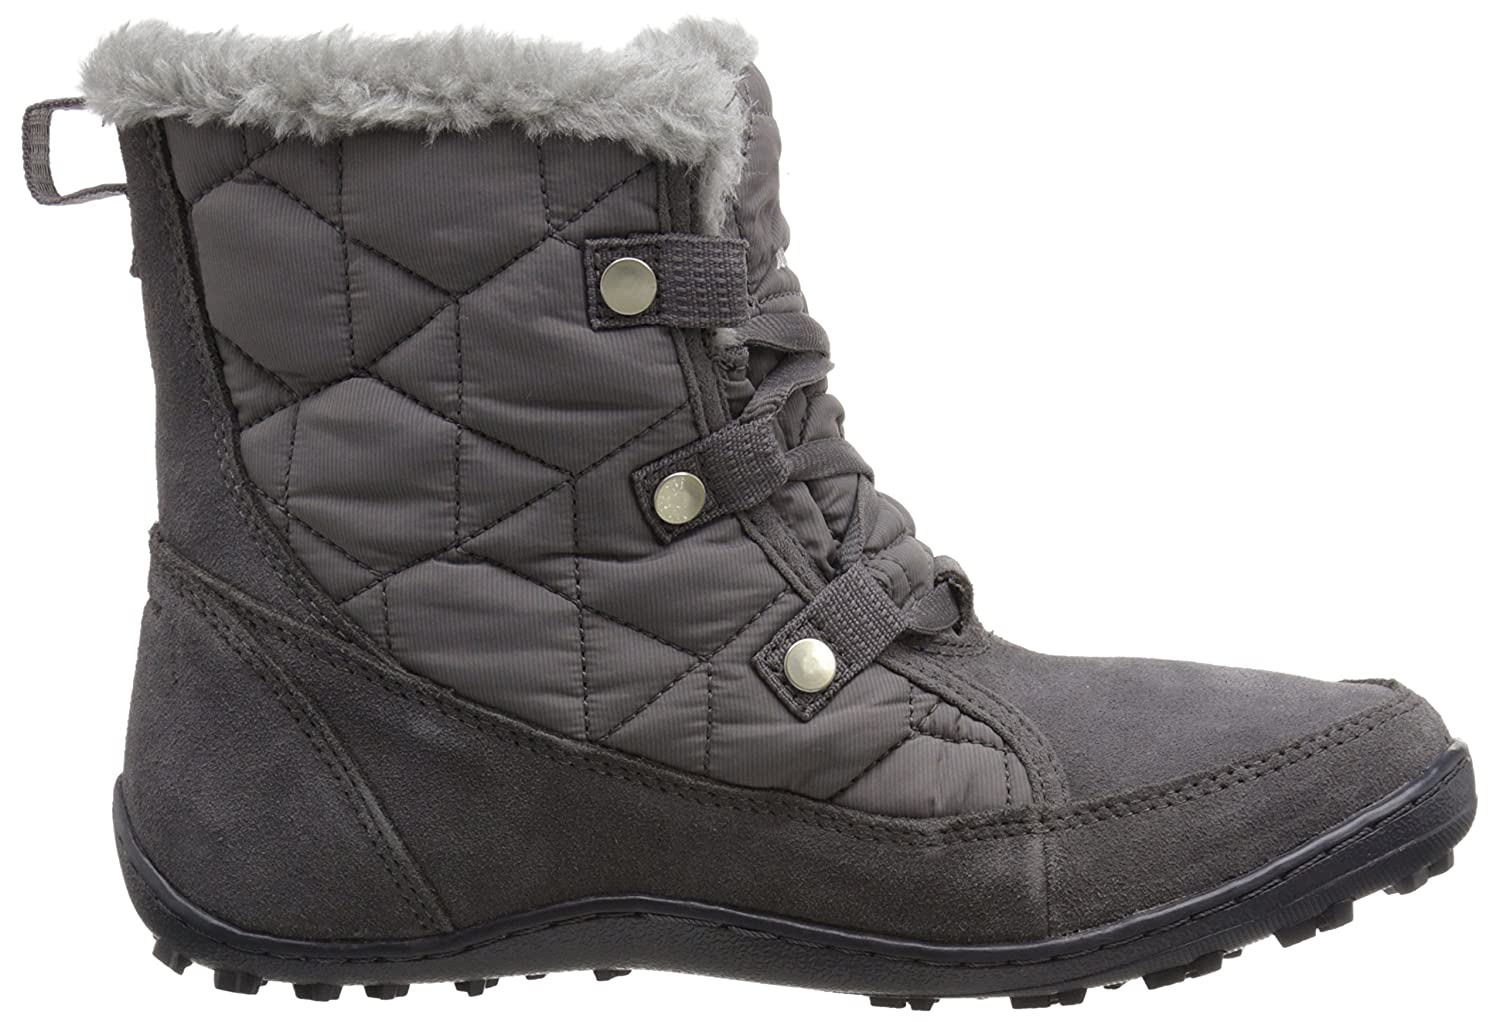 Columbia Women's Minx Shorty Alta Omni-Heat Snow Boot B00Q7R1GYY 7.5 B(M) US|Shale, Dark Raspberry